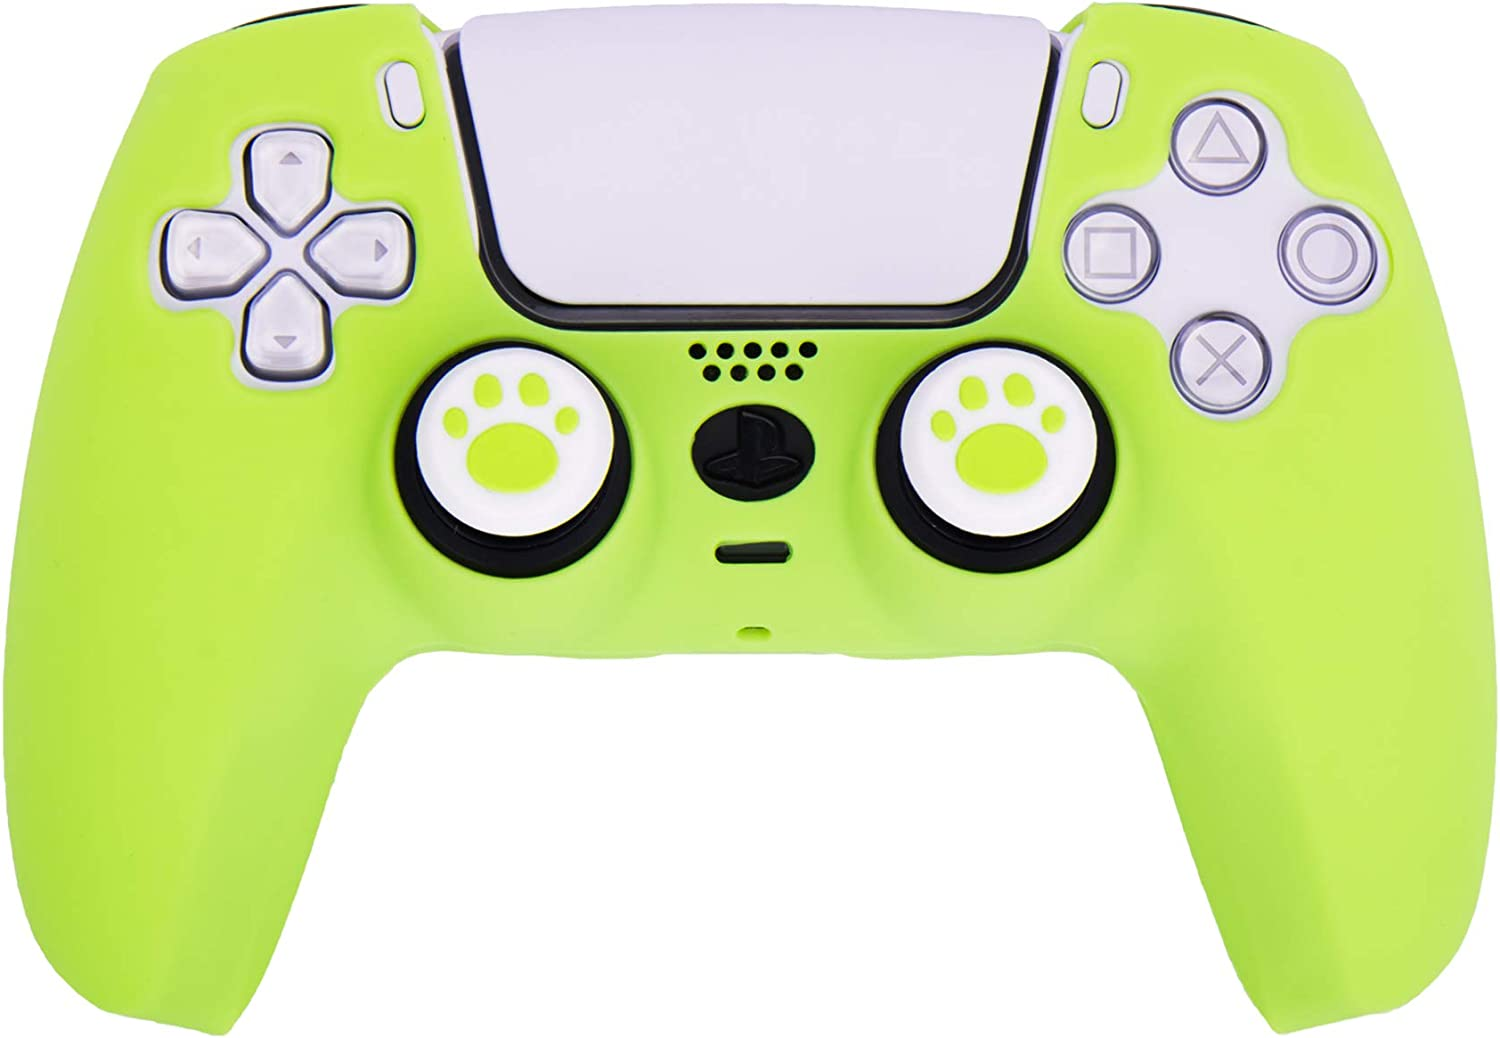 MXRC Silicone Rubber Cover Skin Case x 1 Anti-Slip Customize for PS5 Dualsense Controller x 1(Apple Green) + Cat Paw Thumb Grips x 2